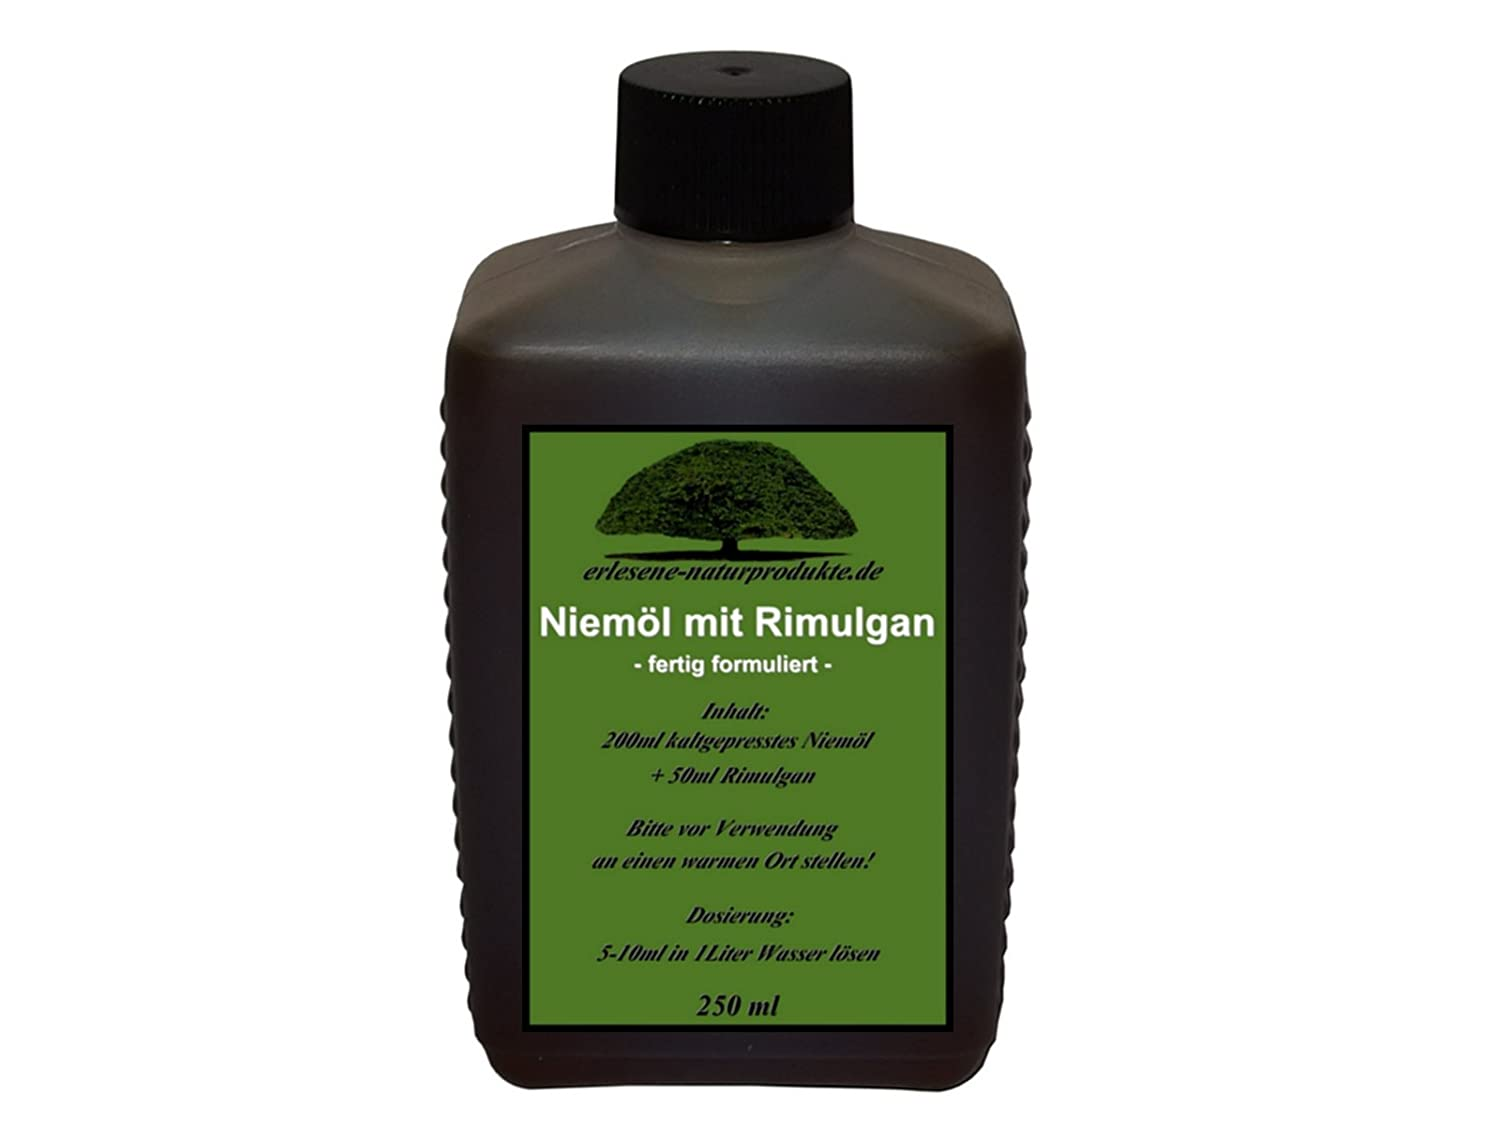 Olio di Neem solubile in acqua 250ml, die erlesene-naturprodukte: Amazon.es: Jardín